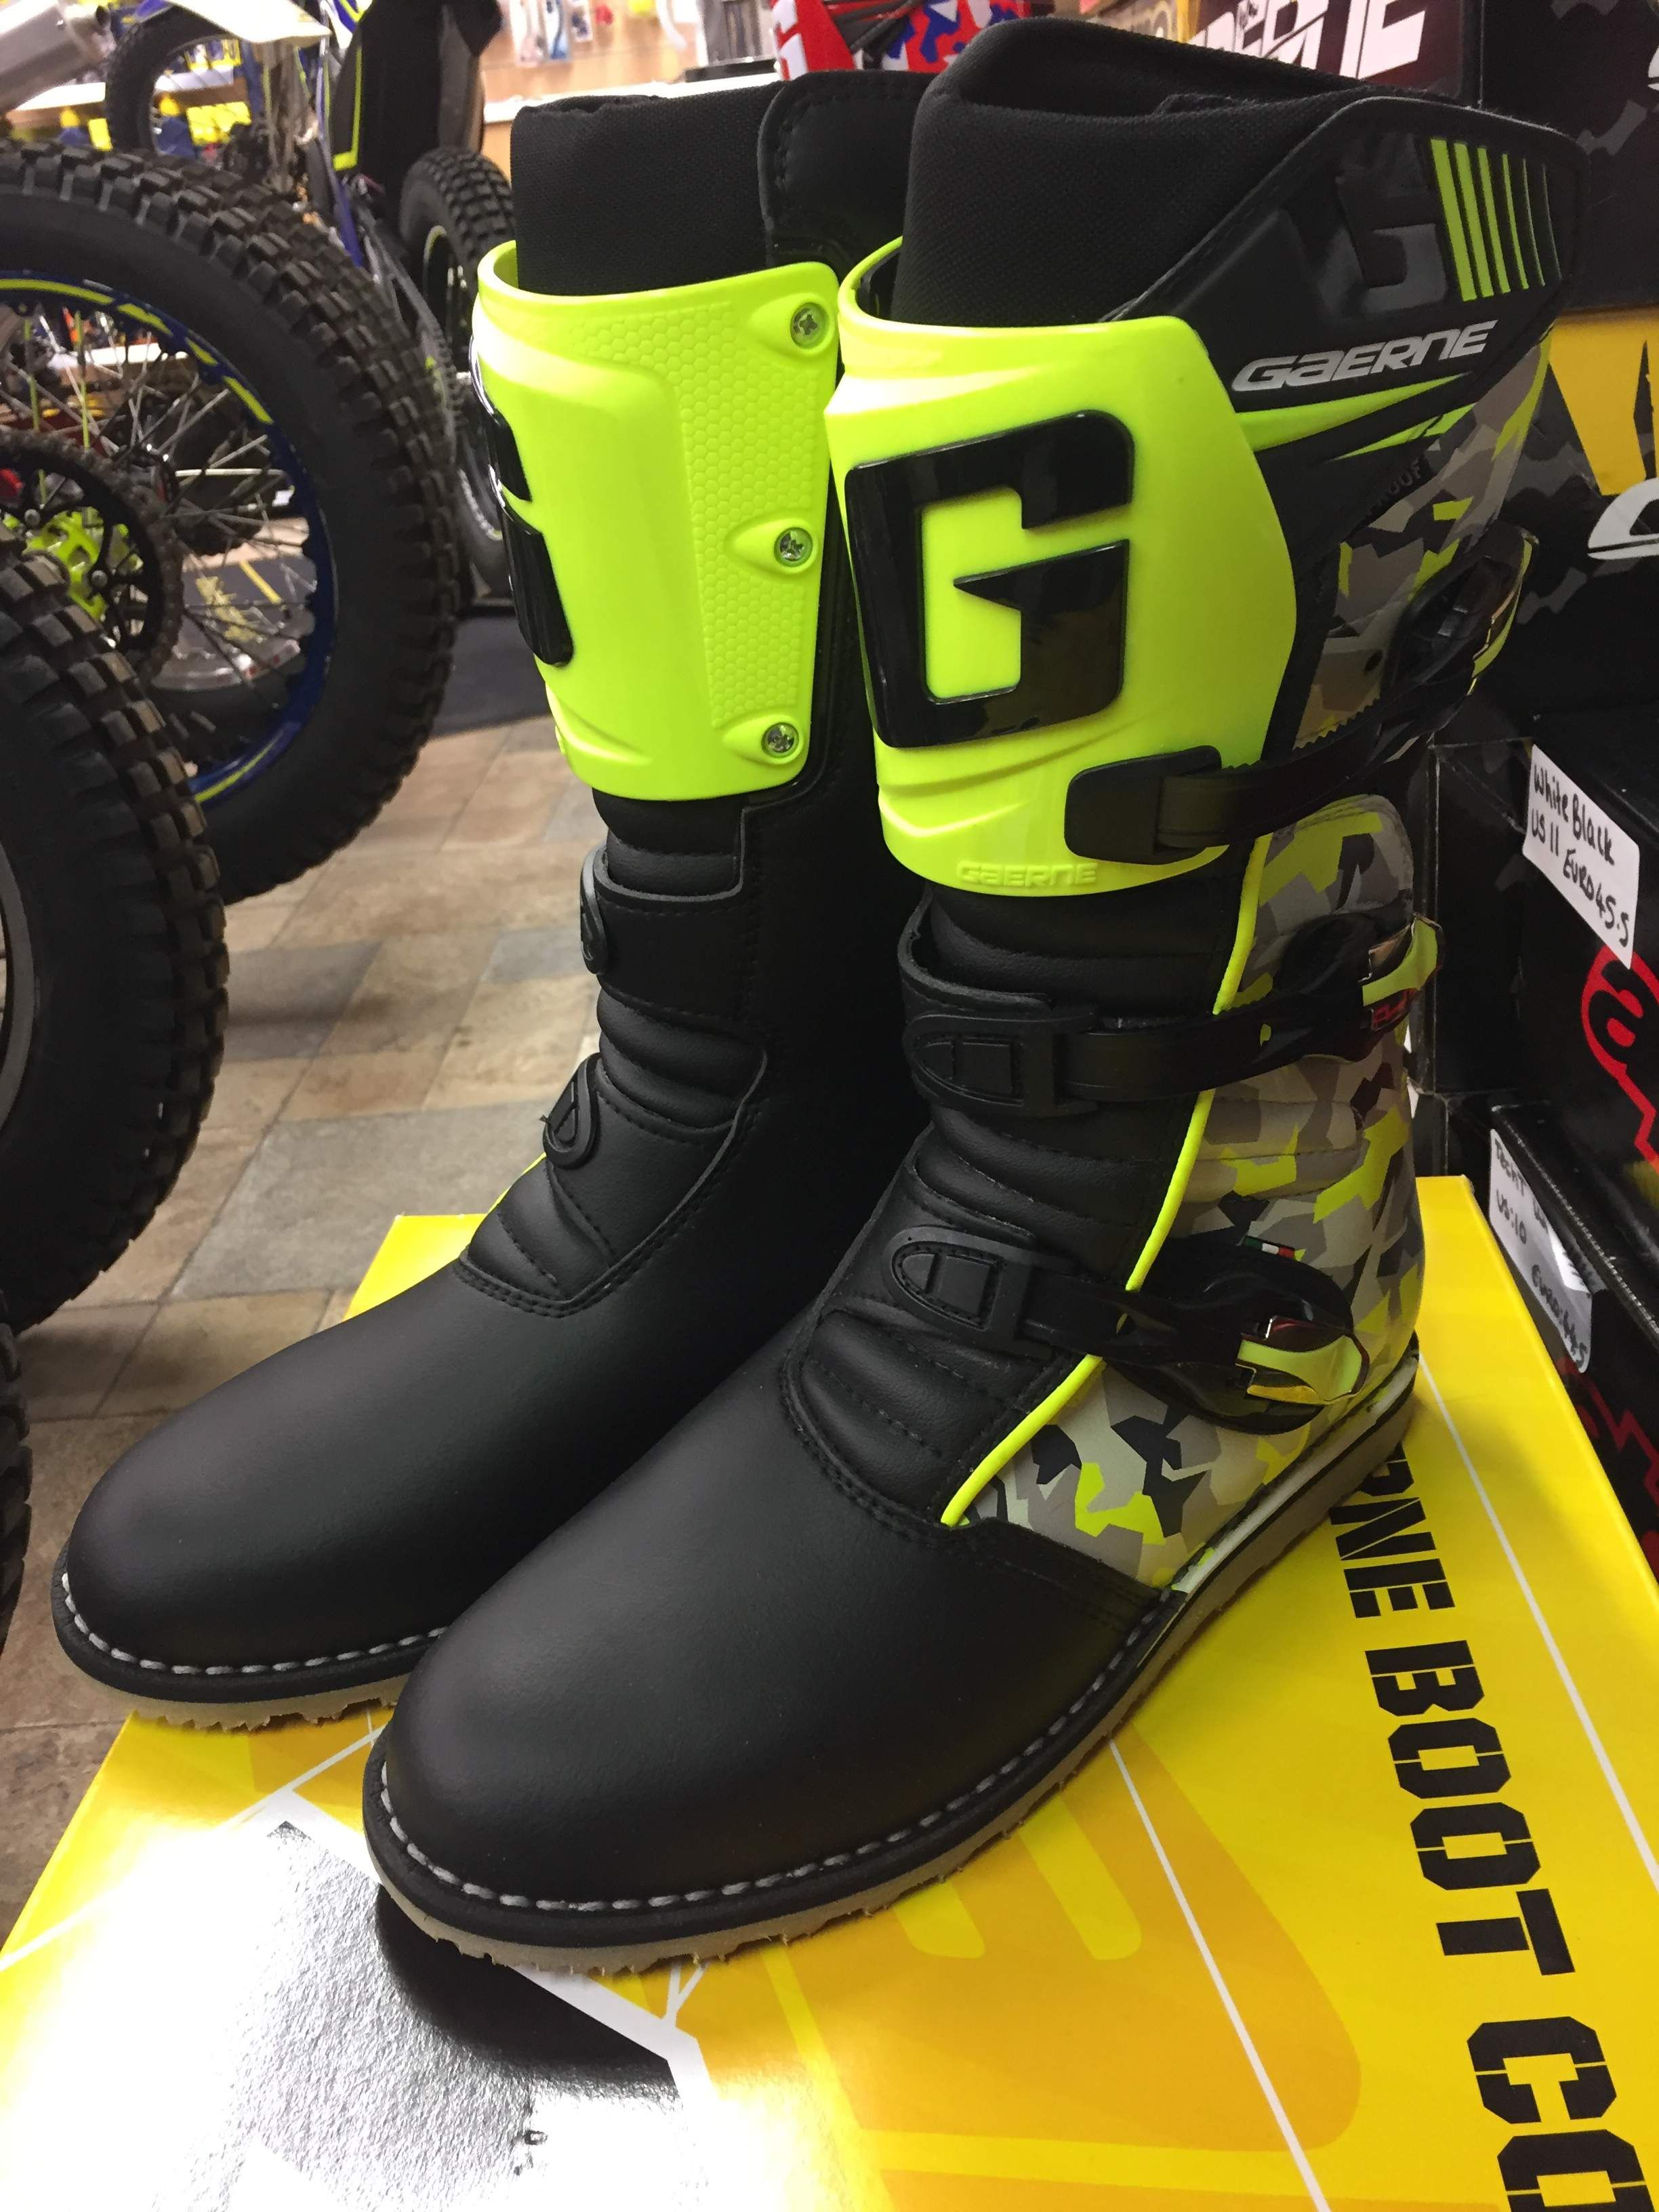 12b4bbe15c GAERNE 2018 CAMO YELLOW/BLACK TRIALS BOOTS | Trials Boots | Boots ...